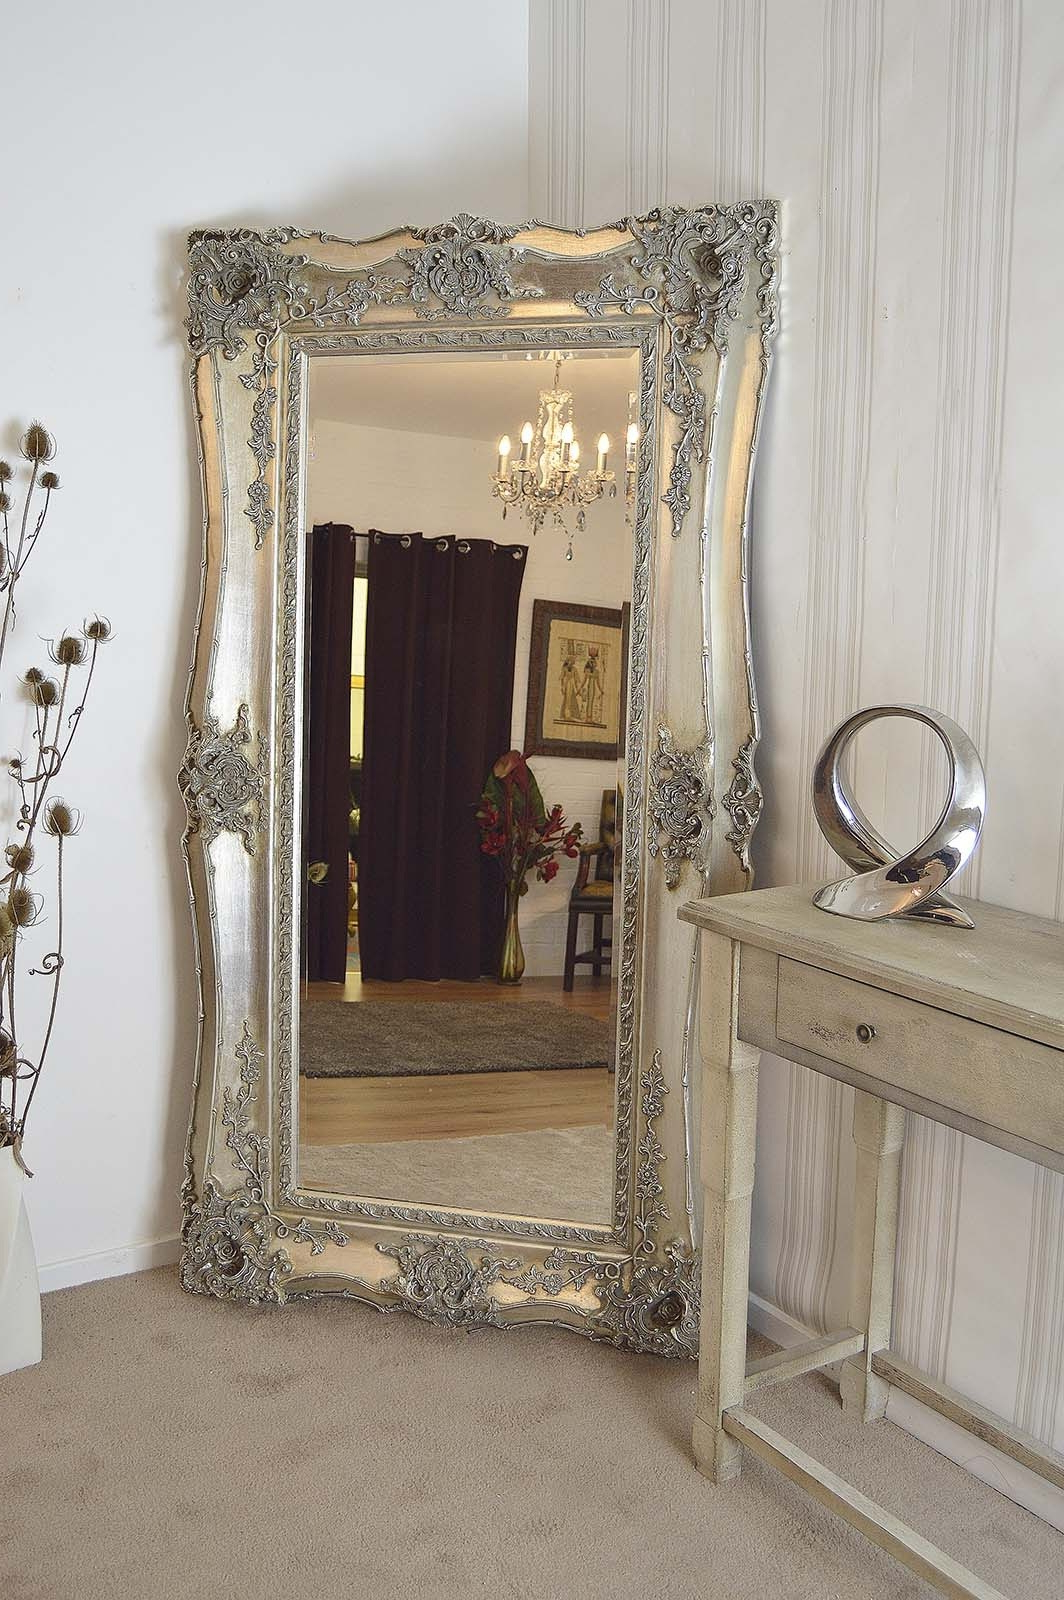 2019 Giant Wall Mirrors Inside Large Wall Mirrors For Sale In Cheery Decorative Framed Mirror (View 13 of 20)